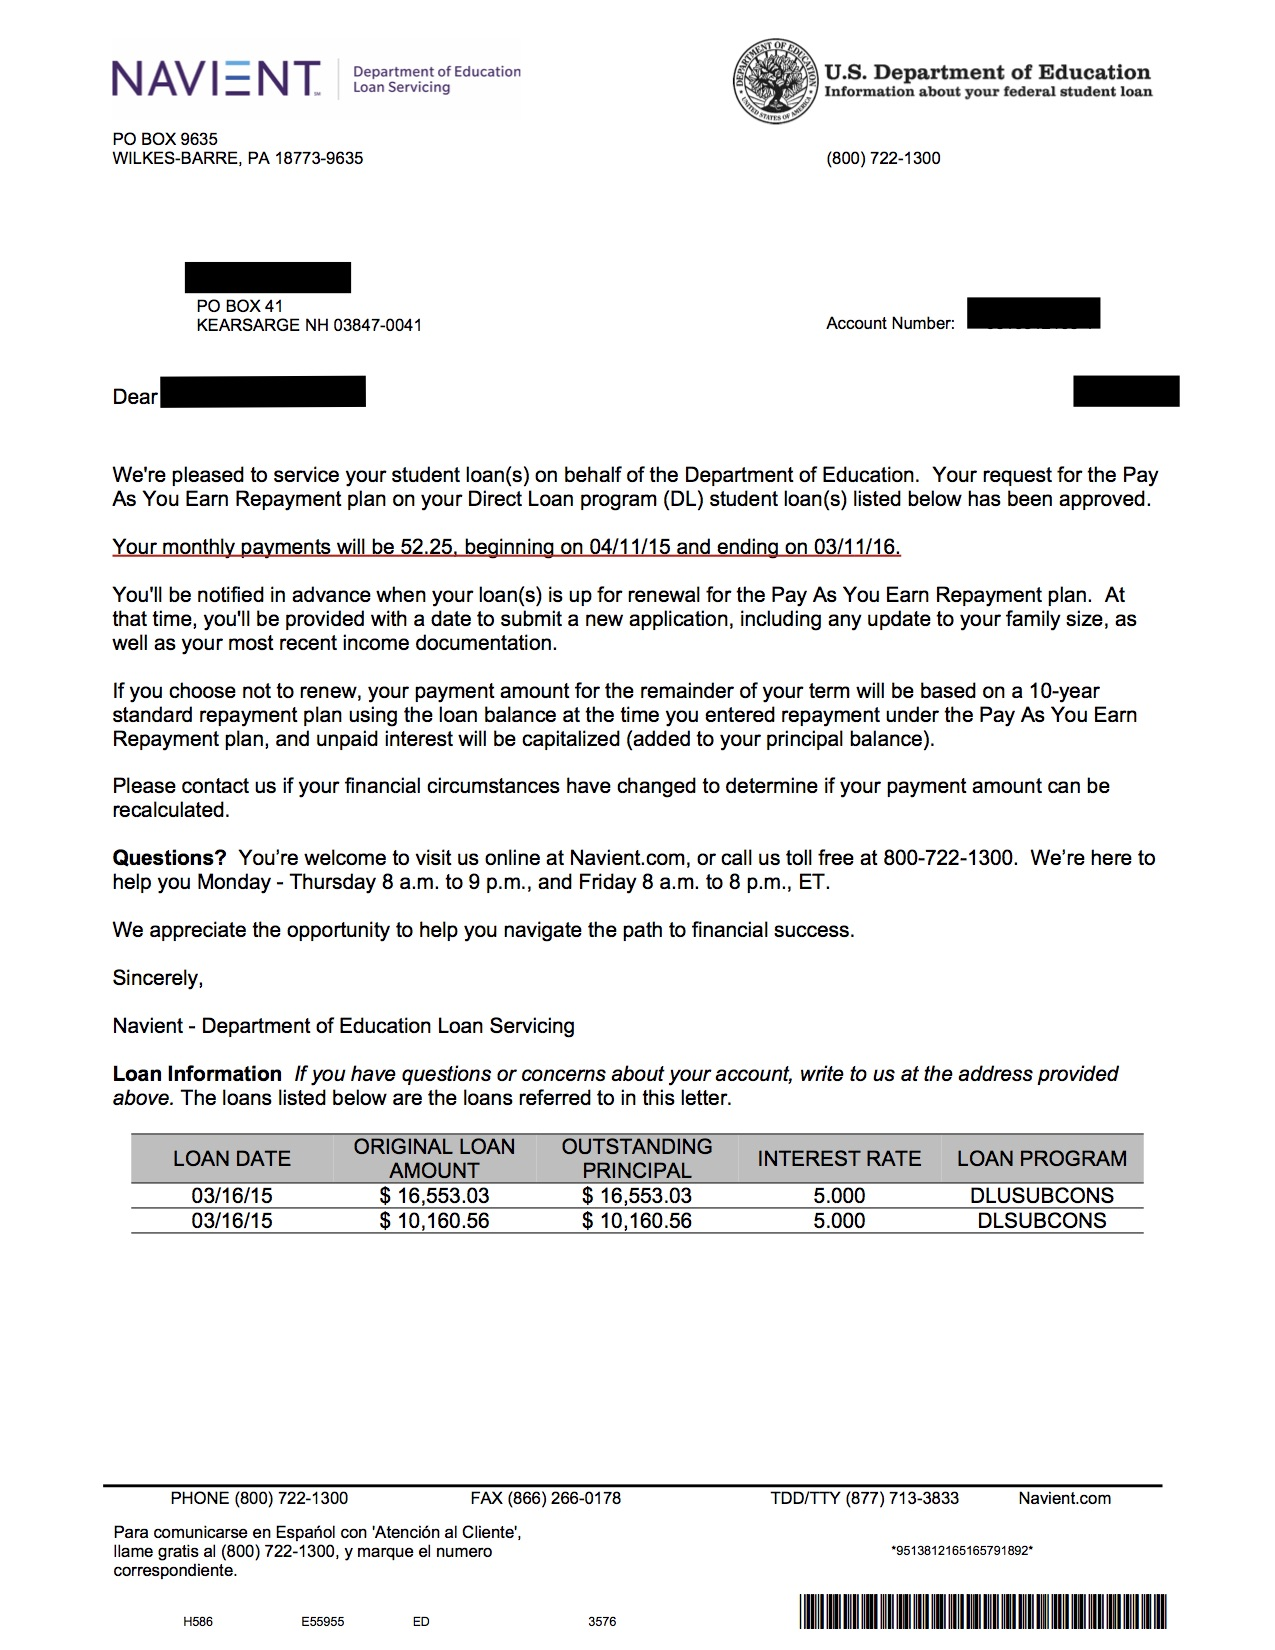 Debt Reduction Chicago (example letter)